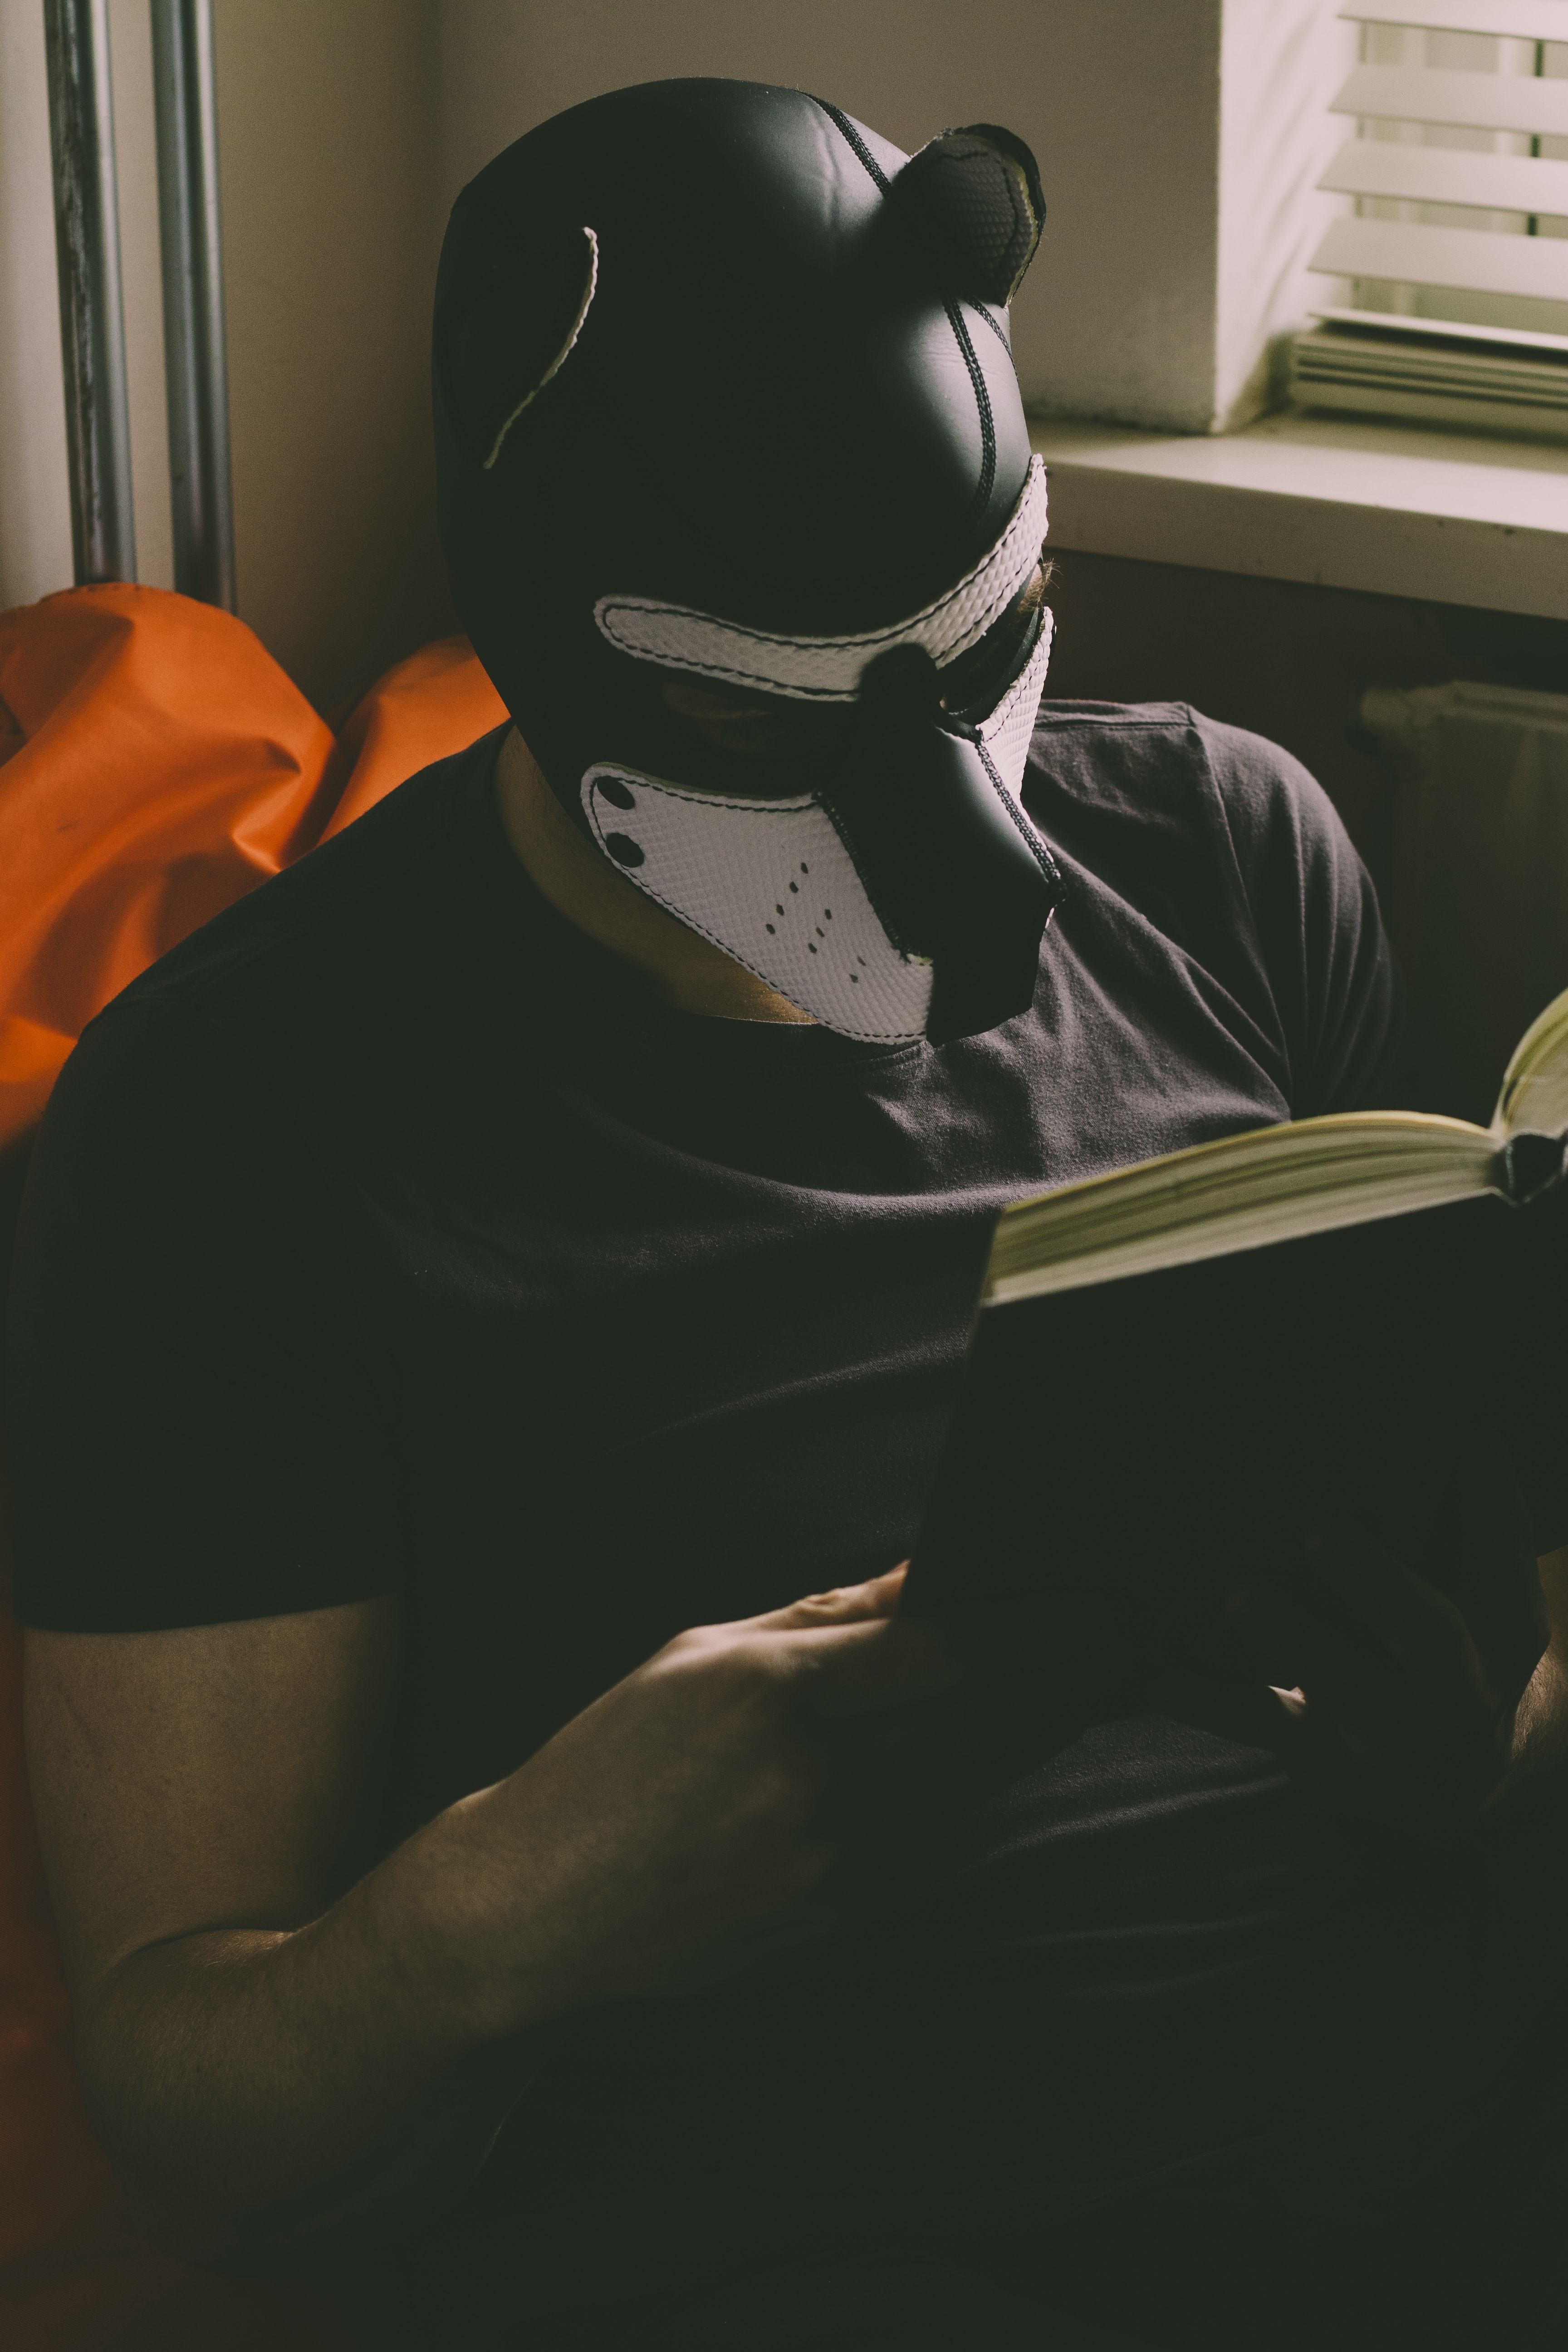 man wearing black and white mask reading book inside room